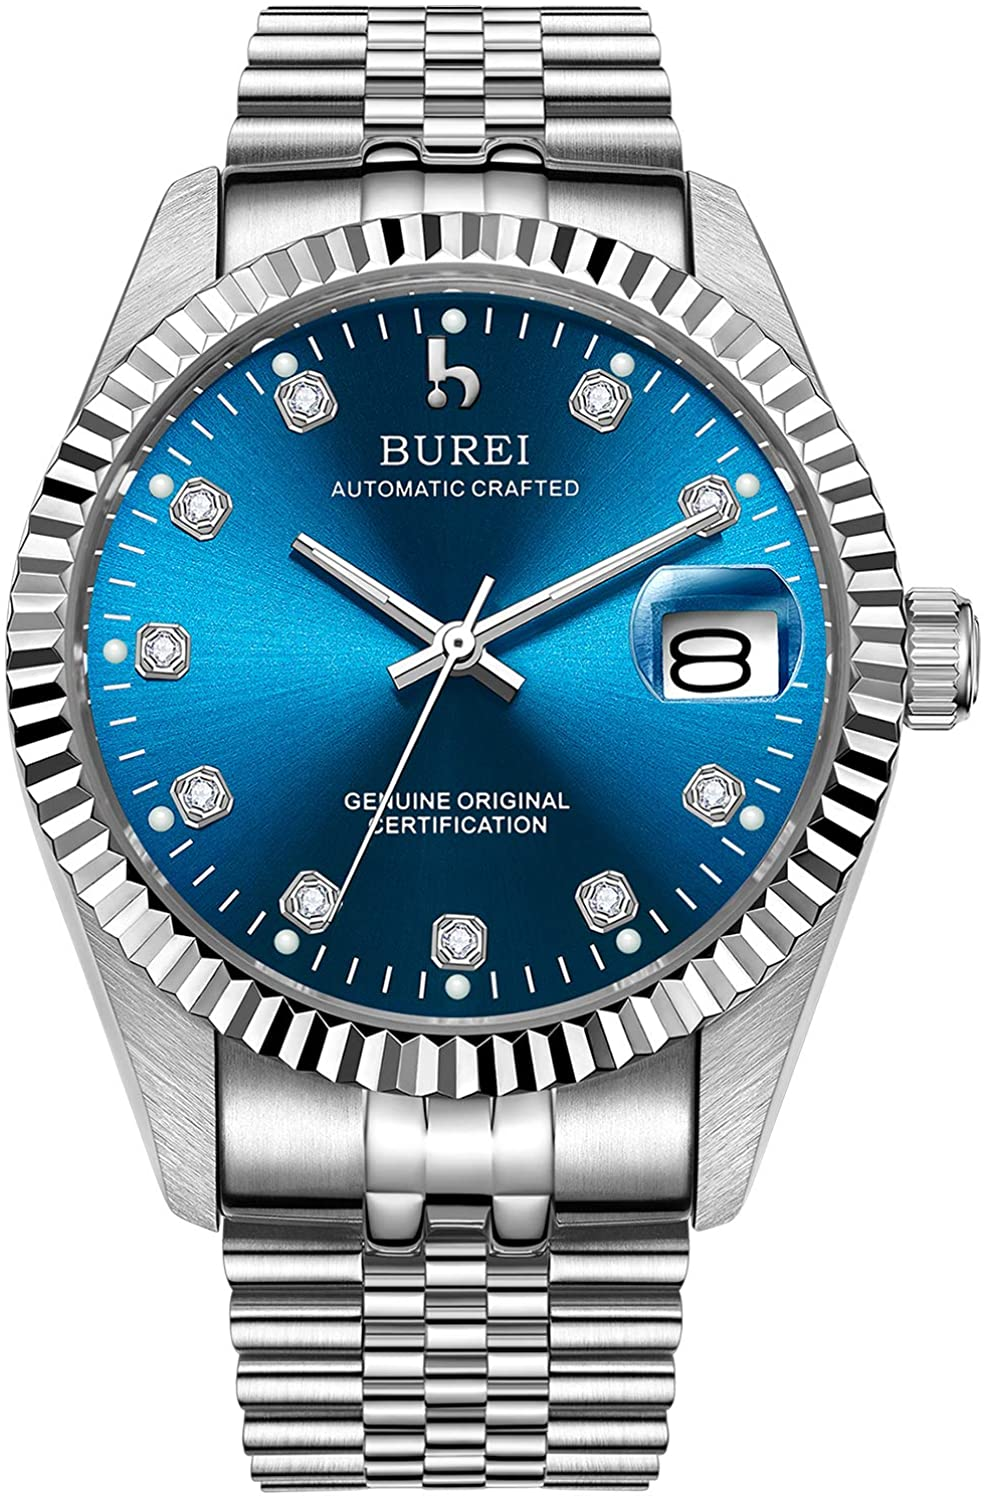 BUREI Men's Luxury Automatic Watch Two Tones Stainless Steel Dress Wrist Watches Self-Winding